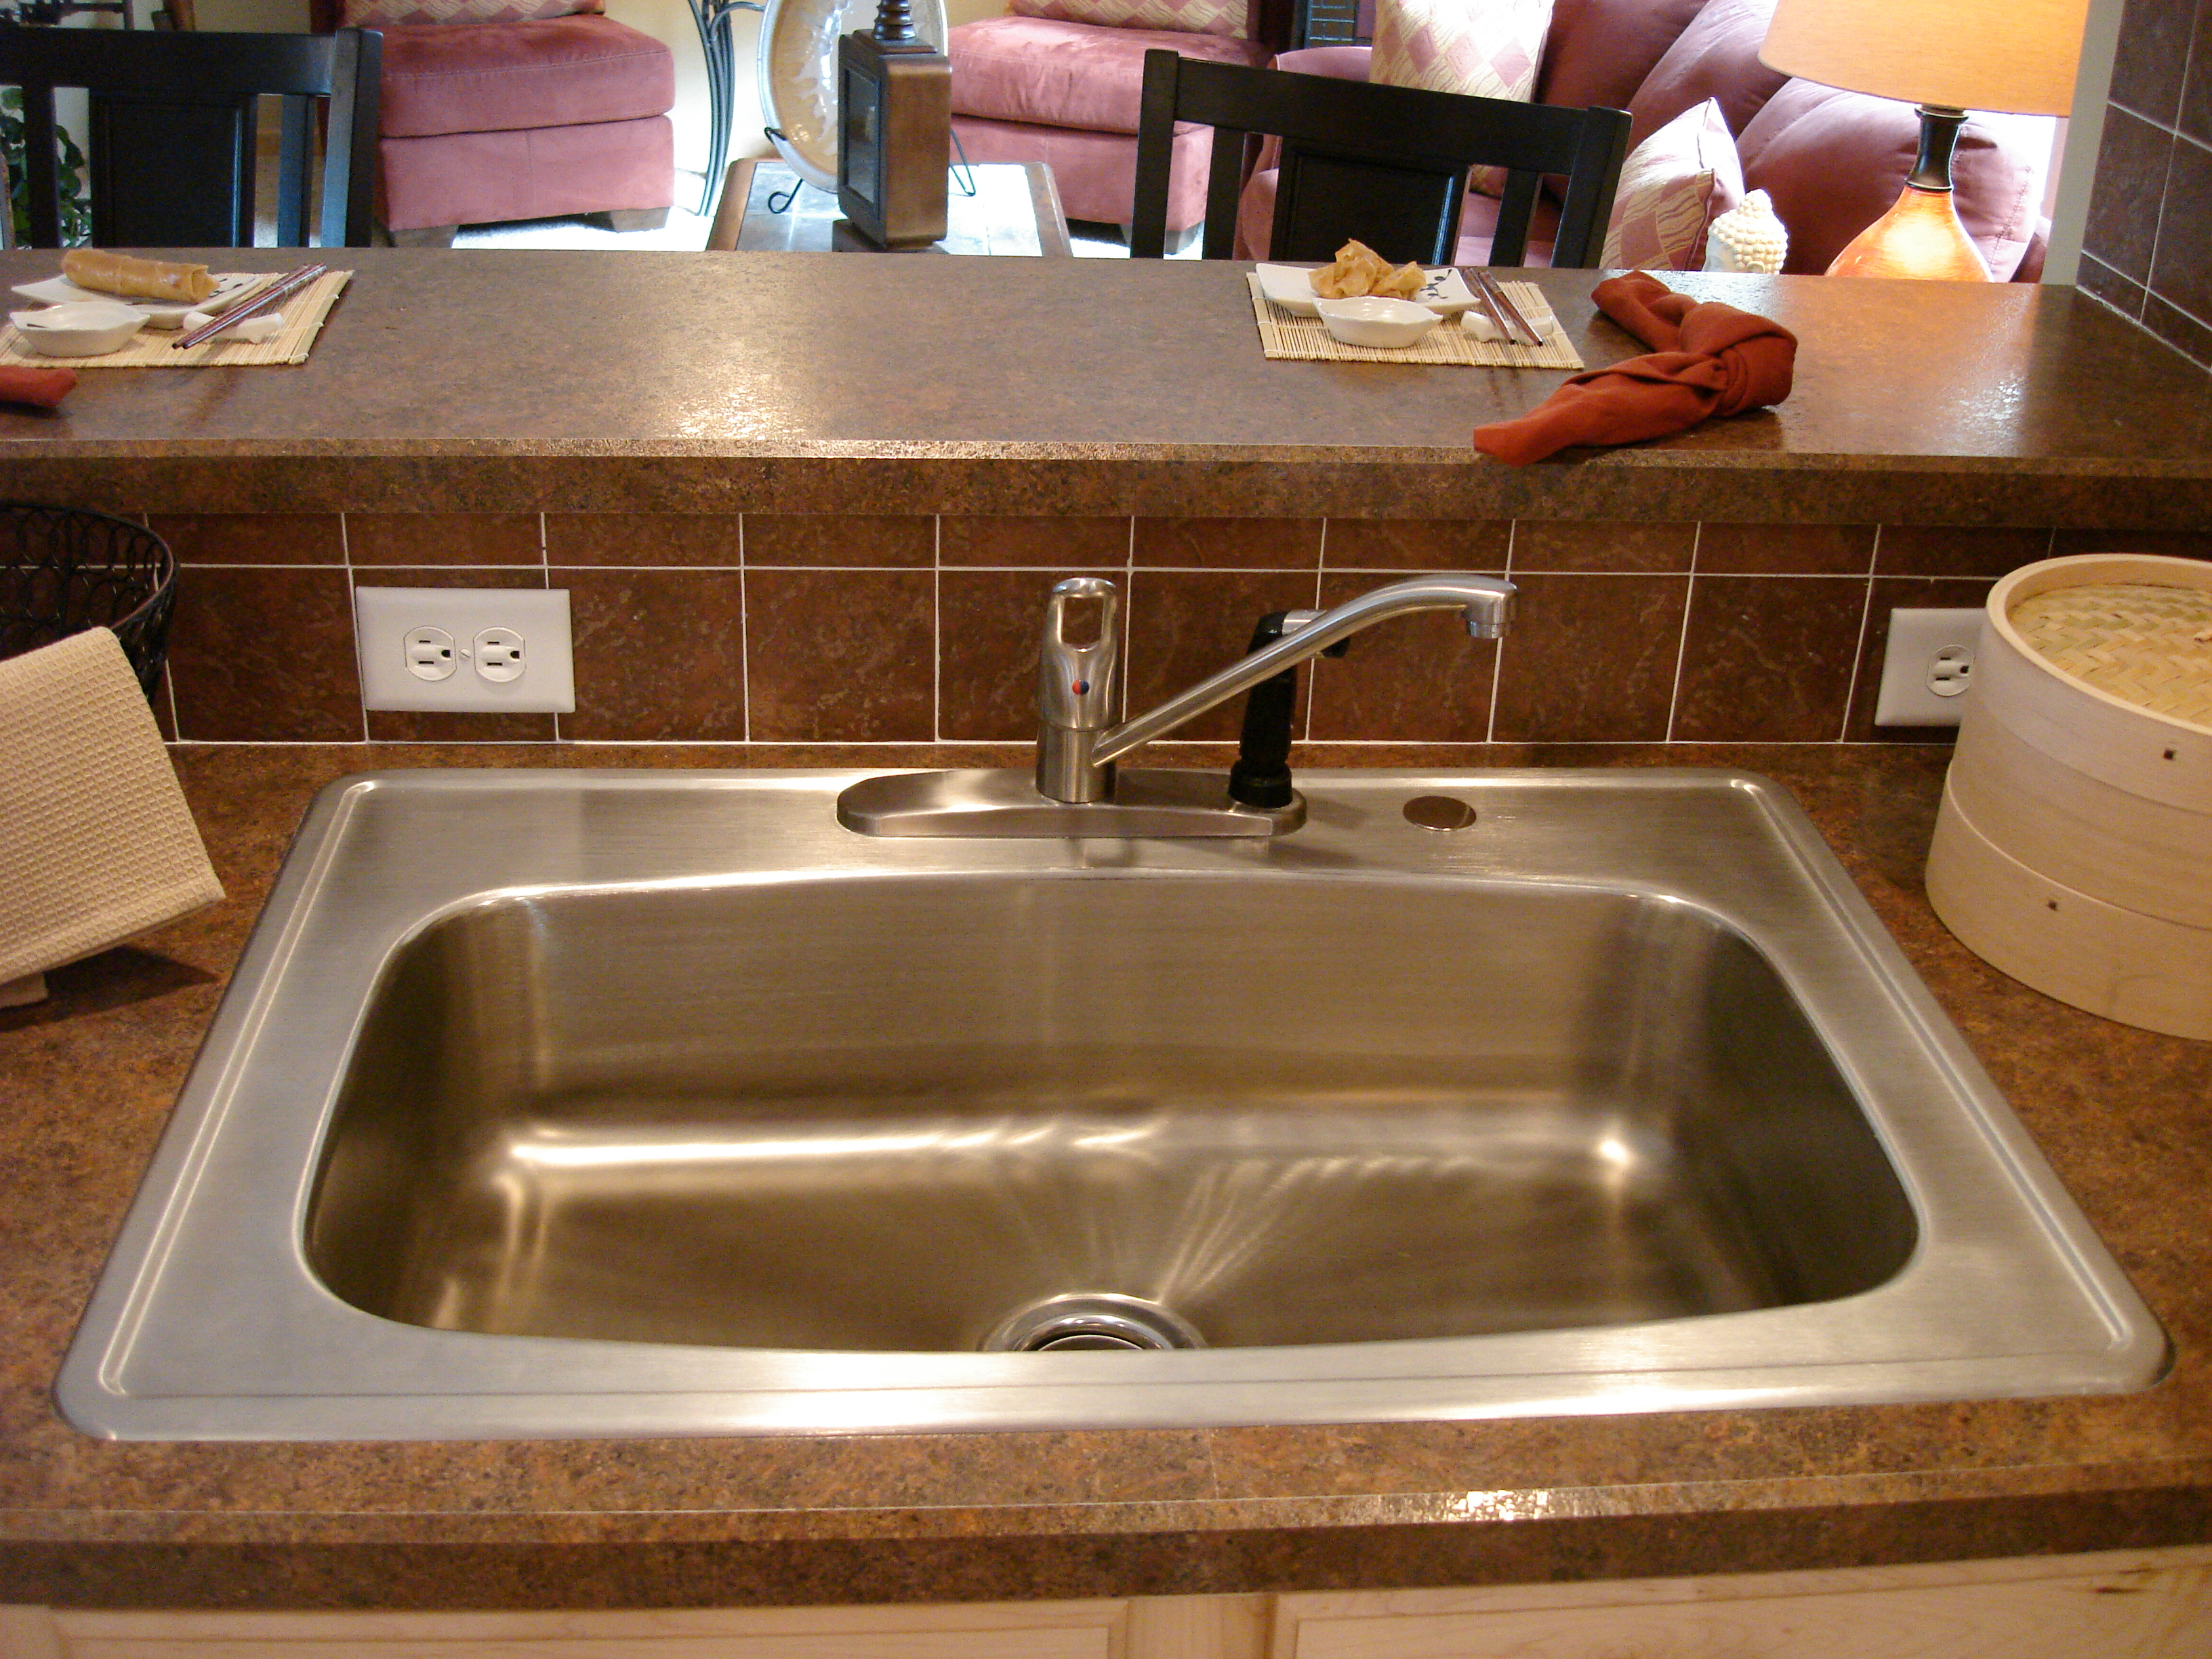 the pennflex ii ranch sample h24 single bowl kitchen sink Optional Single Bowl Kitchen Sink Pullout sprayer hidden somewhat by faucet Download the Original Photo